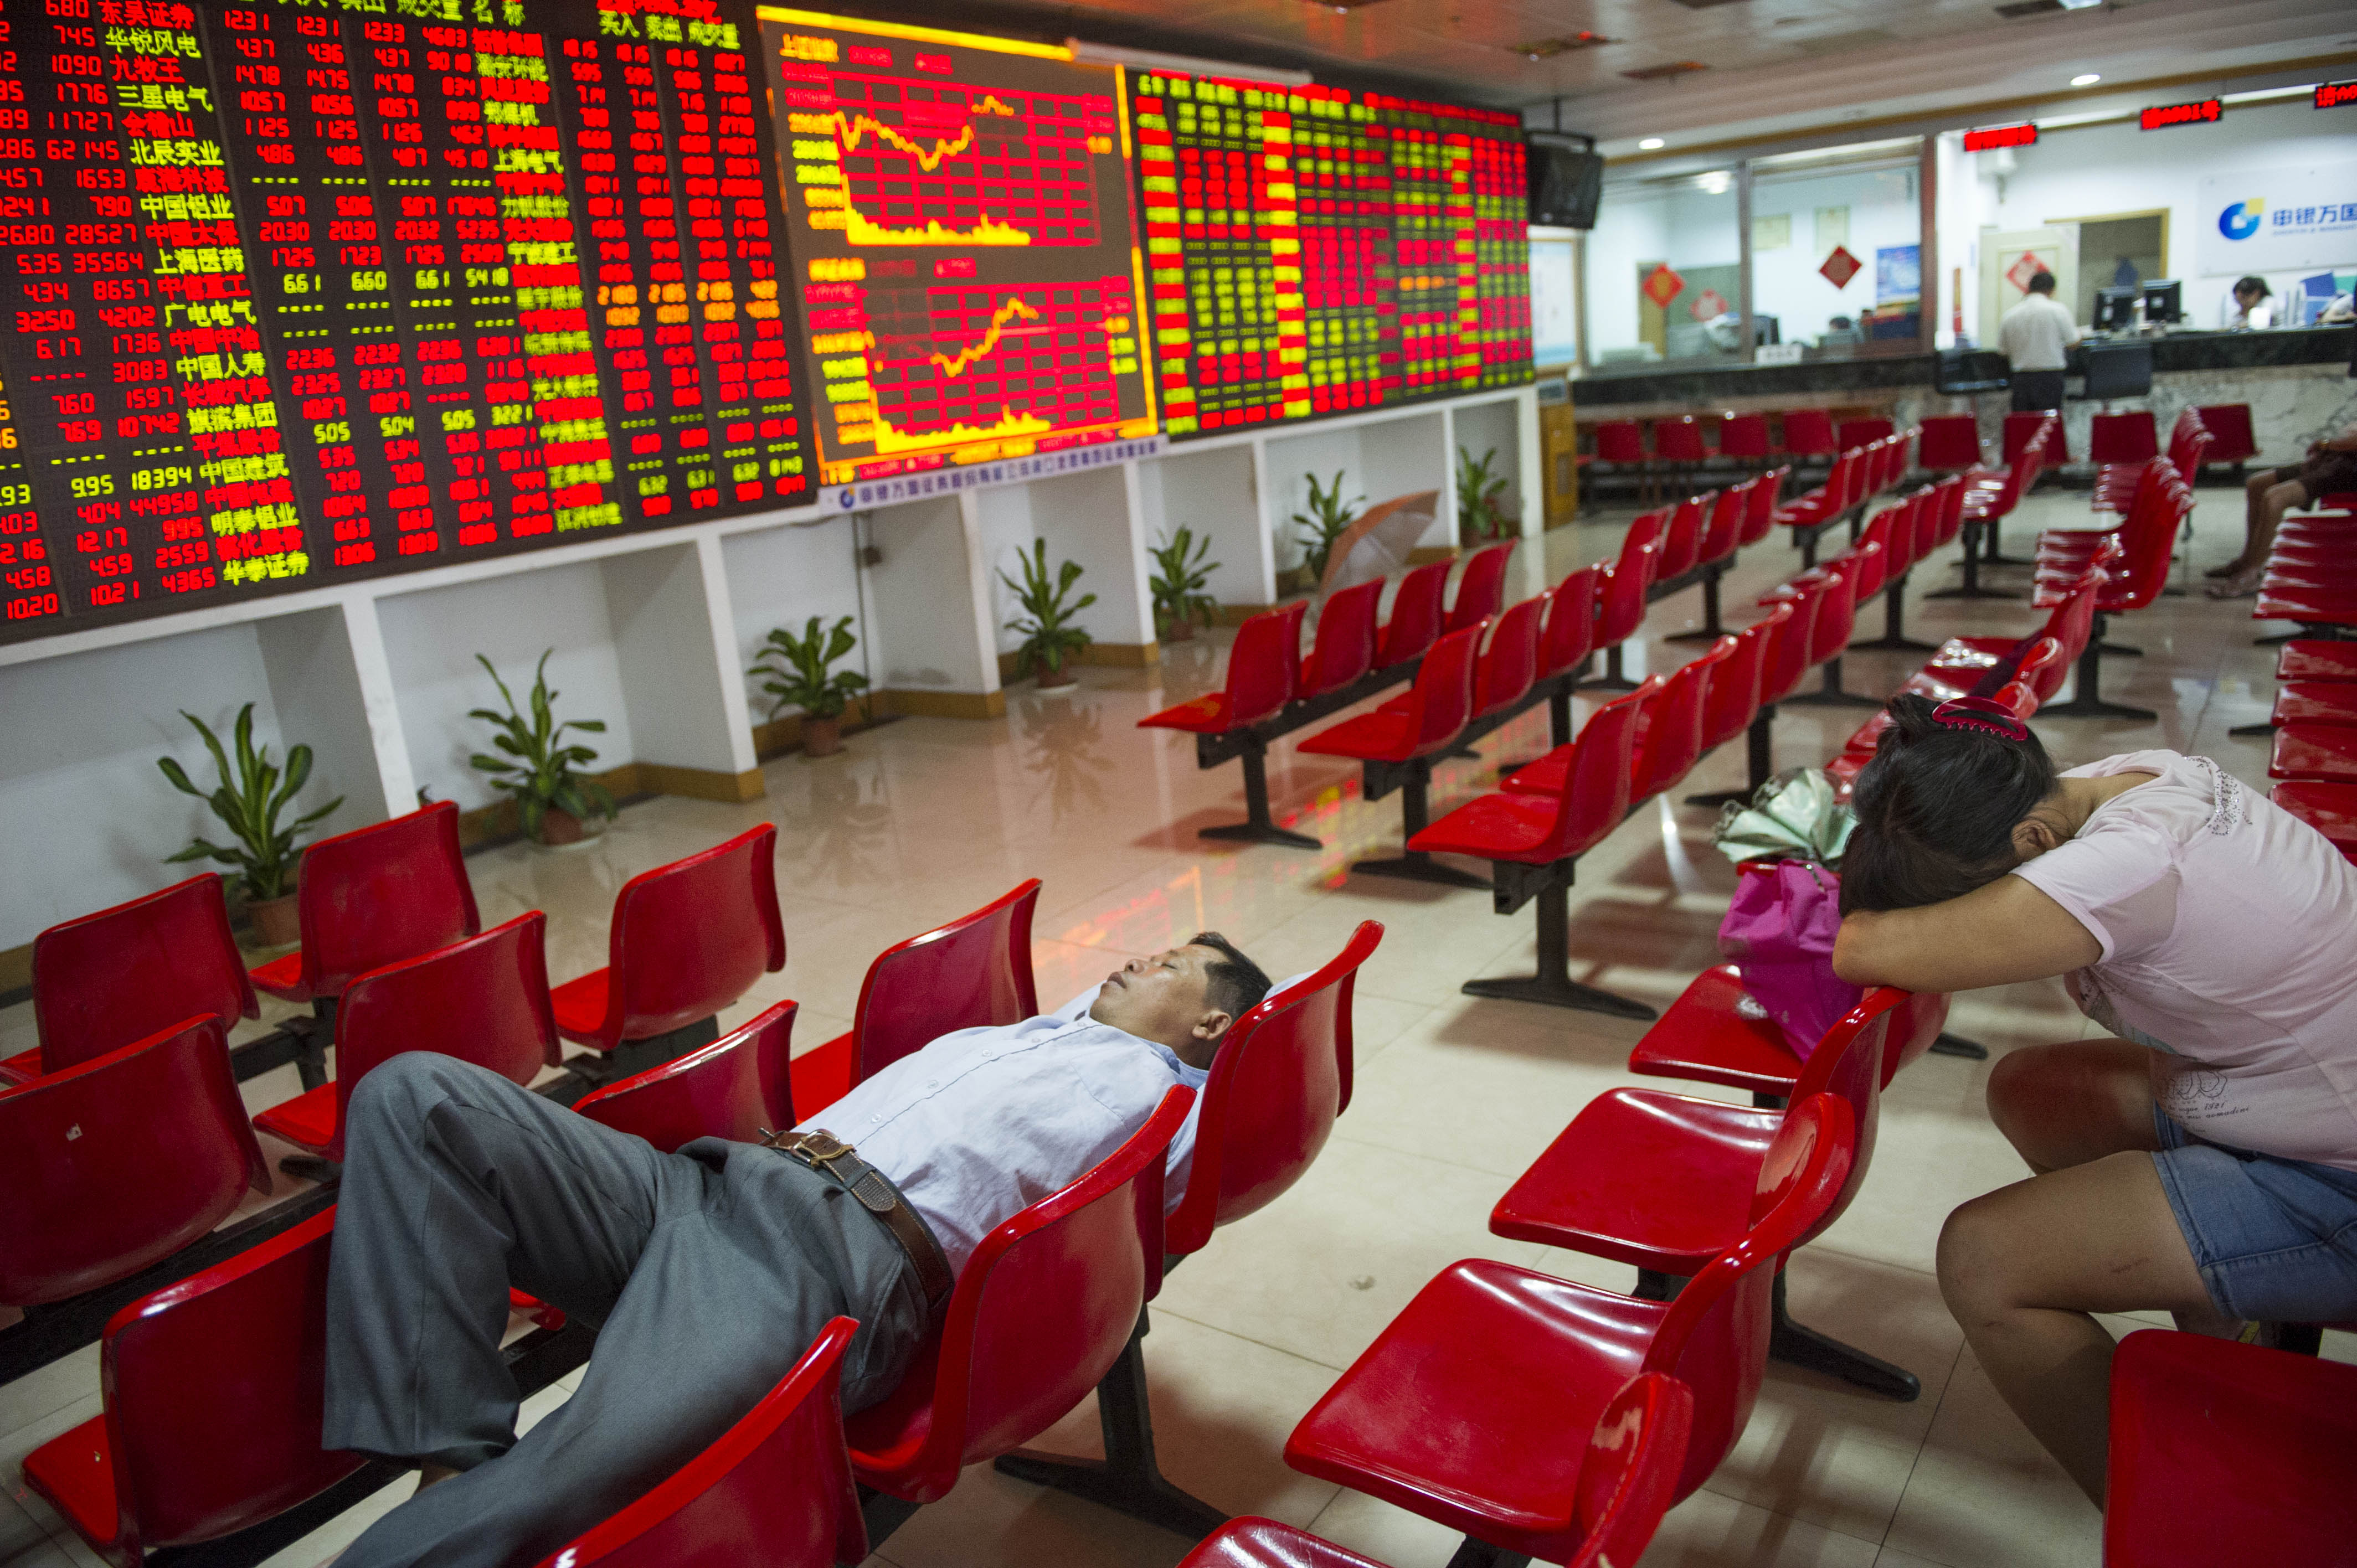 Investors have a rest at a stock exchange hall on August 26, 2015 in Haikou, China.